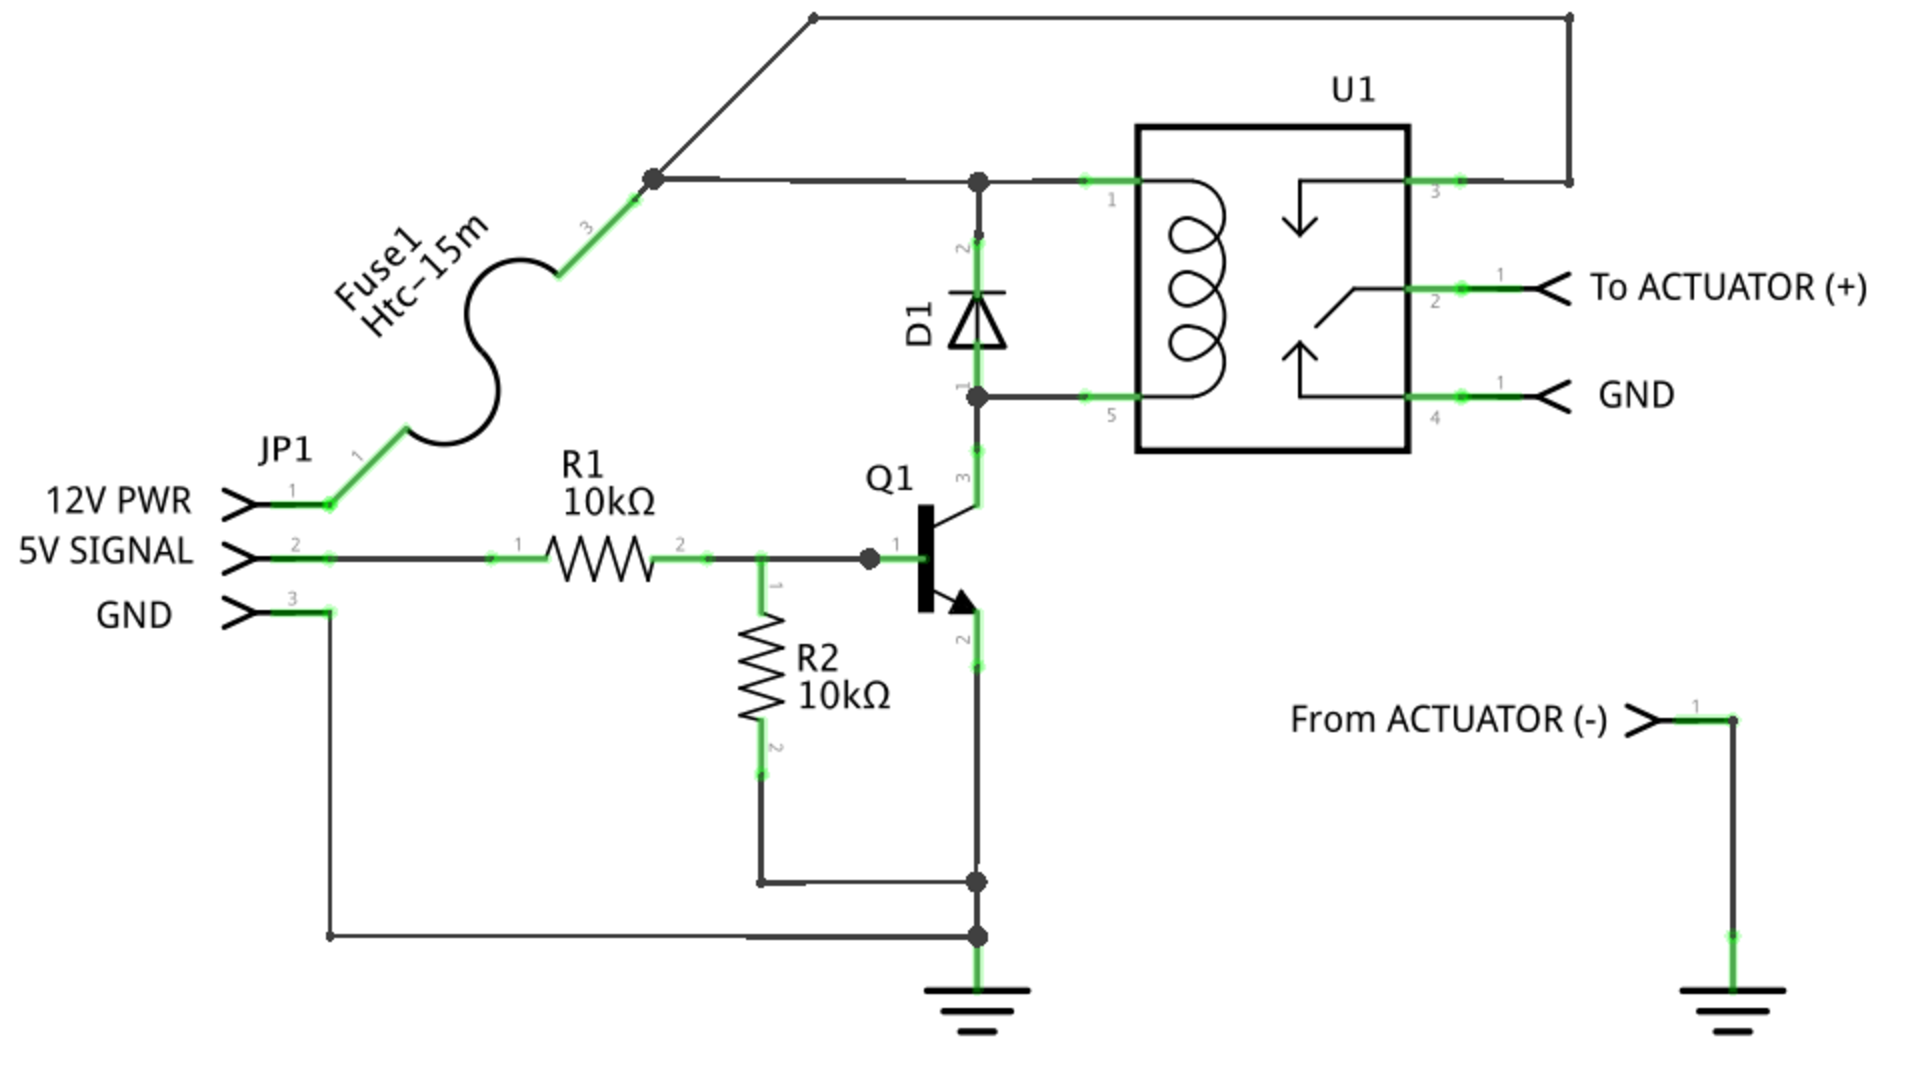 Tutorial Setting Up A Valve Controller Open Storm Docsopen Relay For Circuit 8 Diagram Connecting The To Transistor